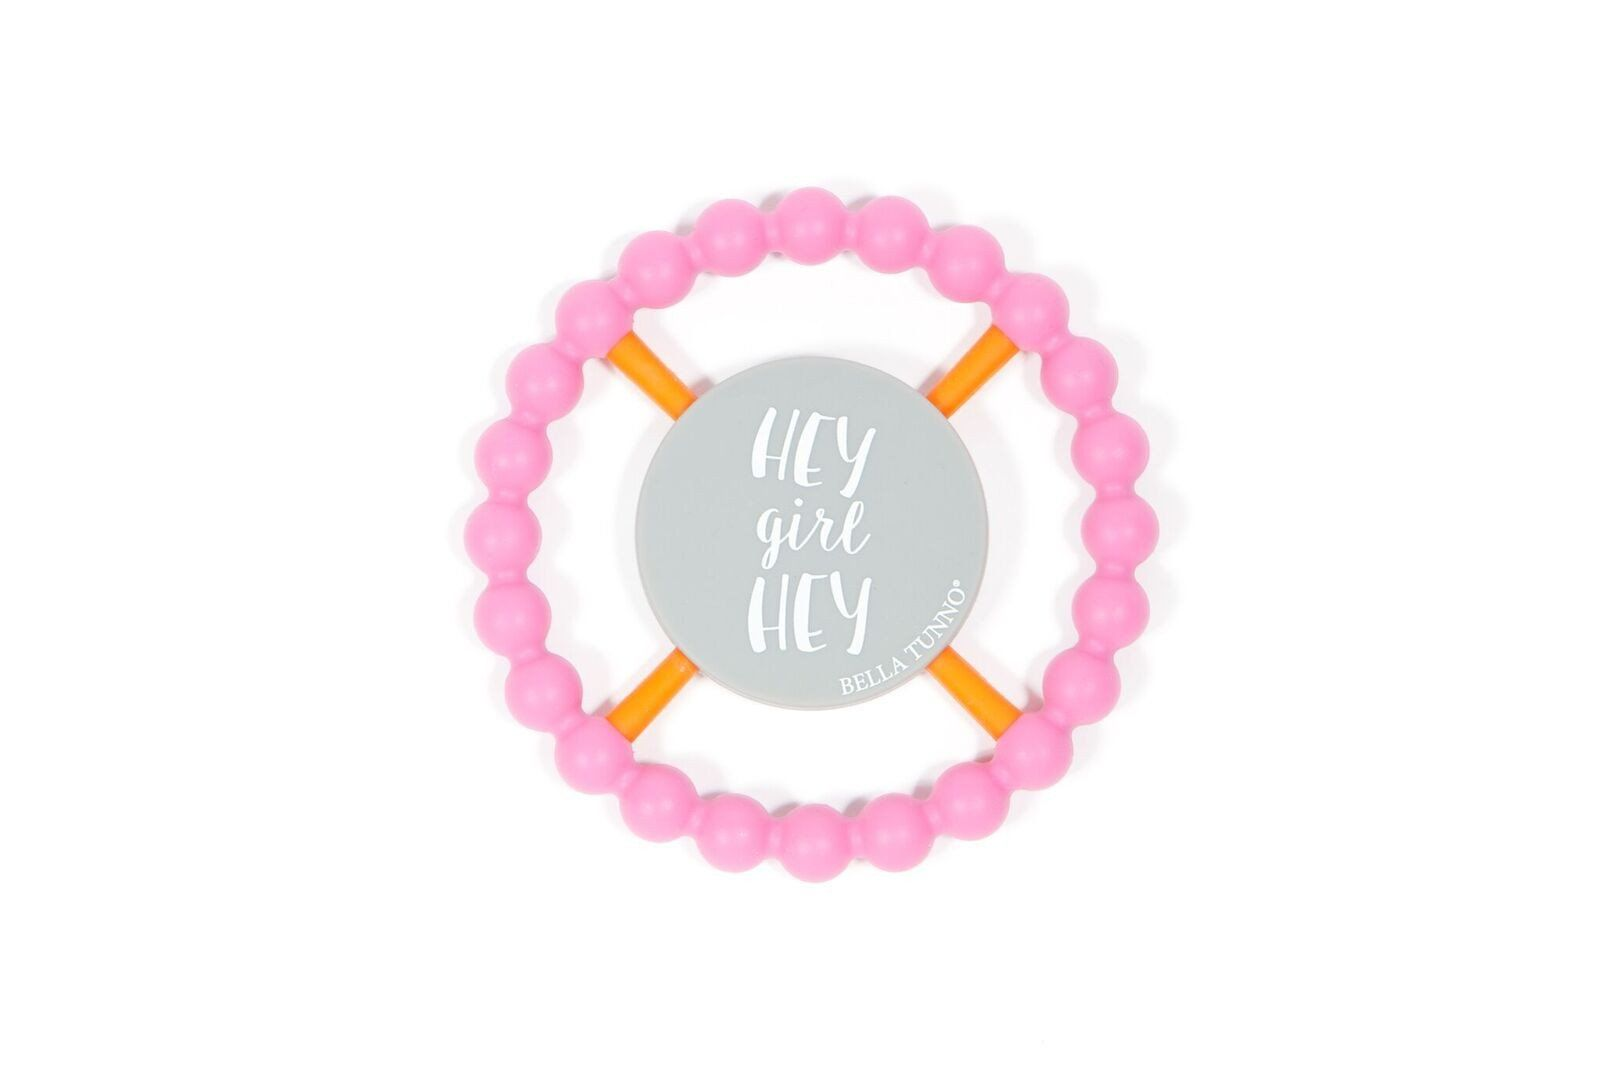 HEY GIRL HEY TEETHER - PINK (With images) | Teethers, Baby ...